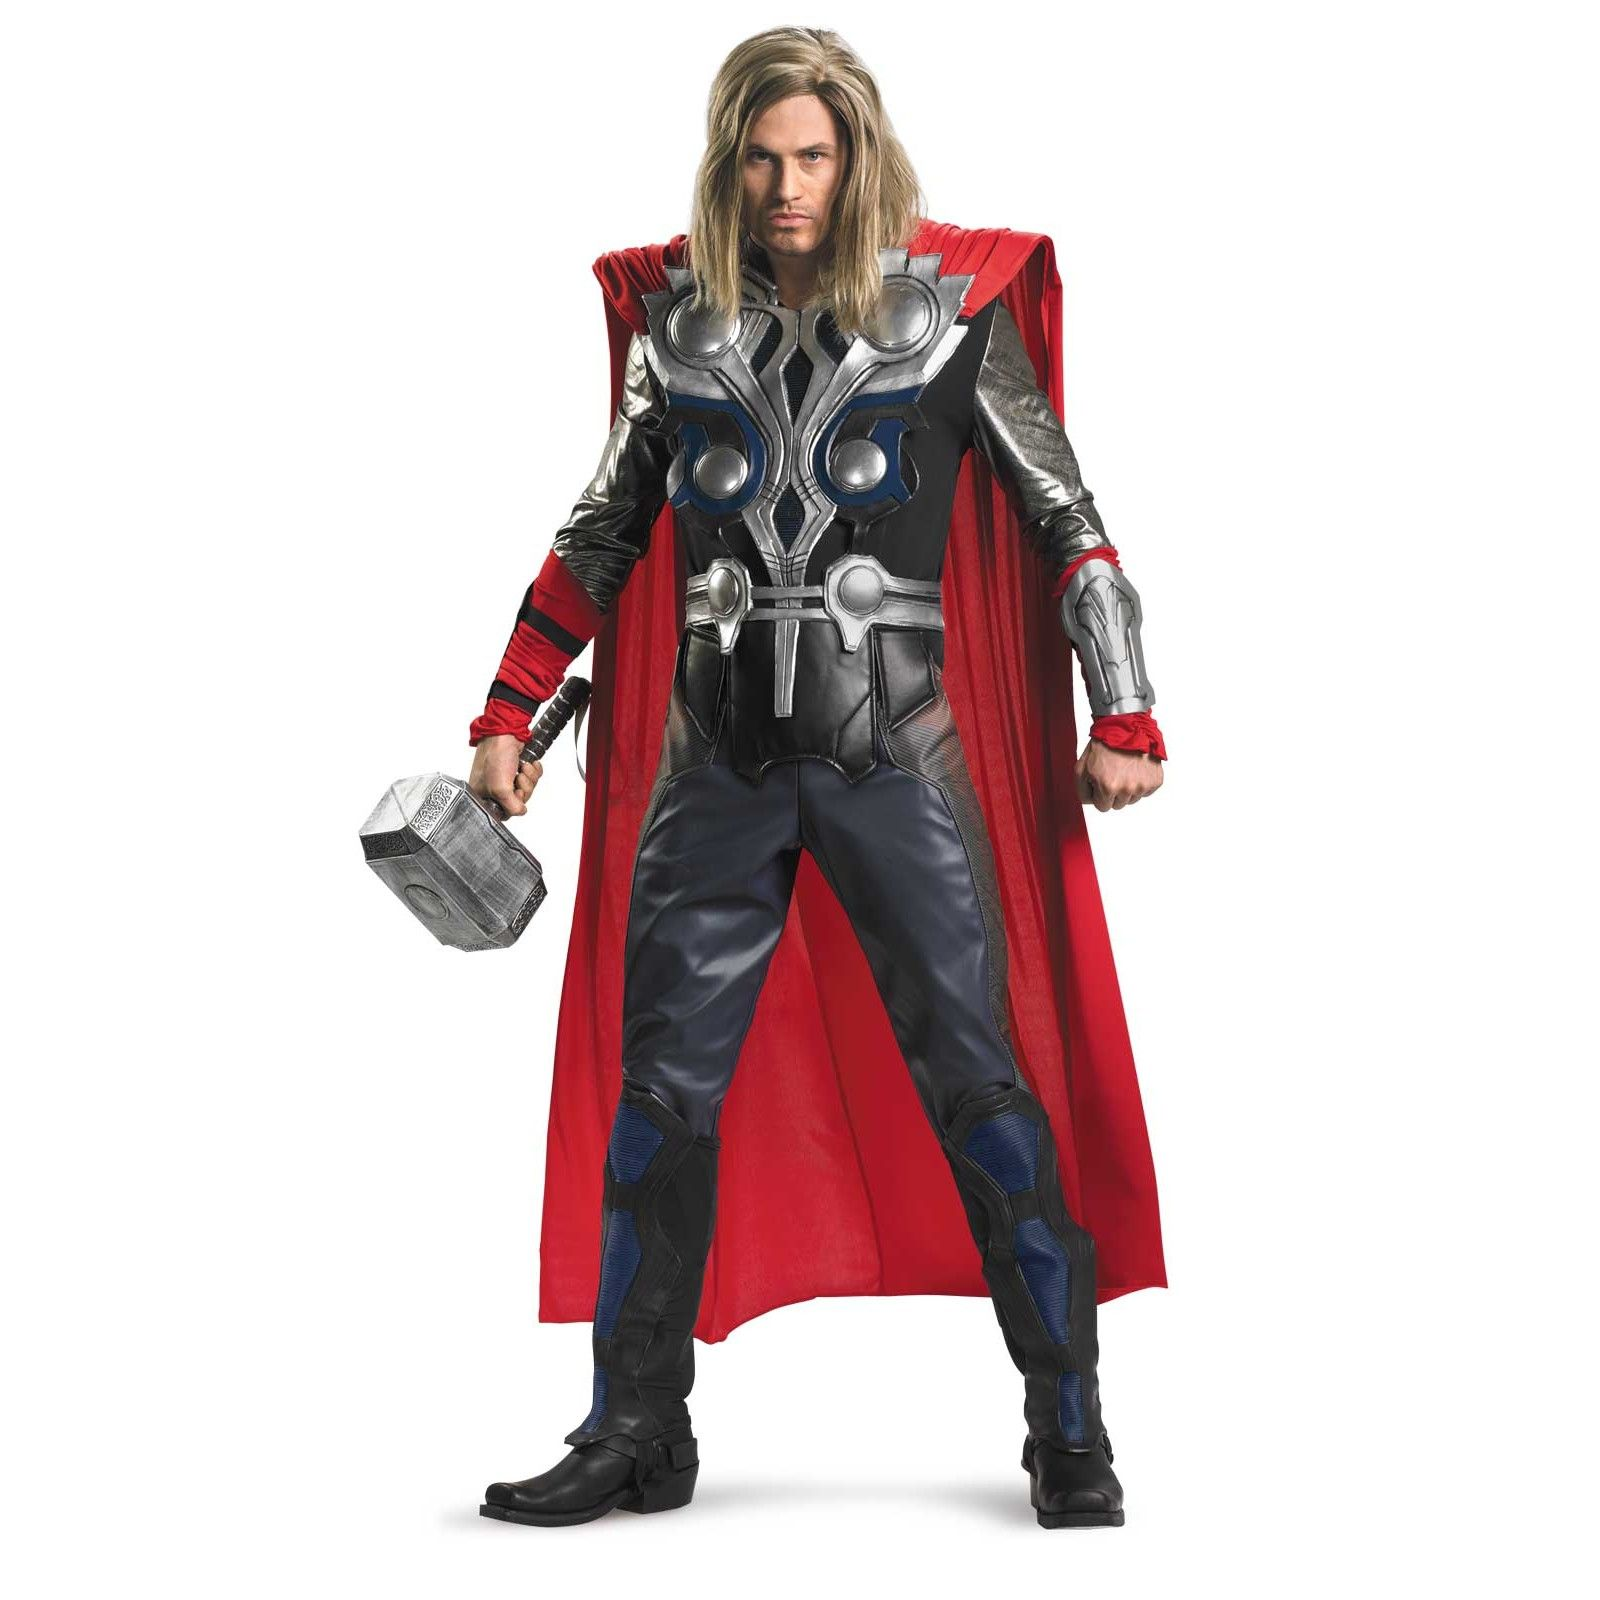 Pin on Get the Look: Avengers Costumes